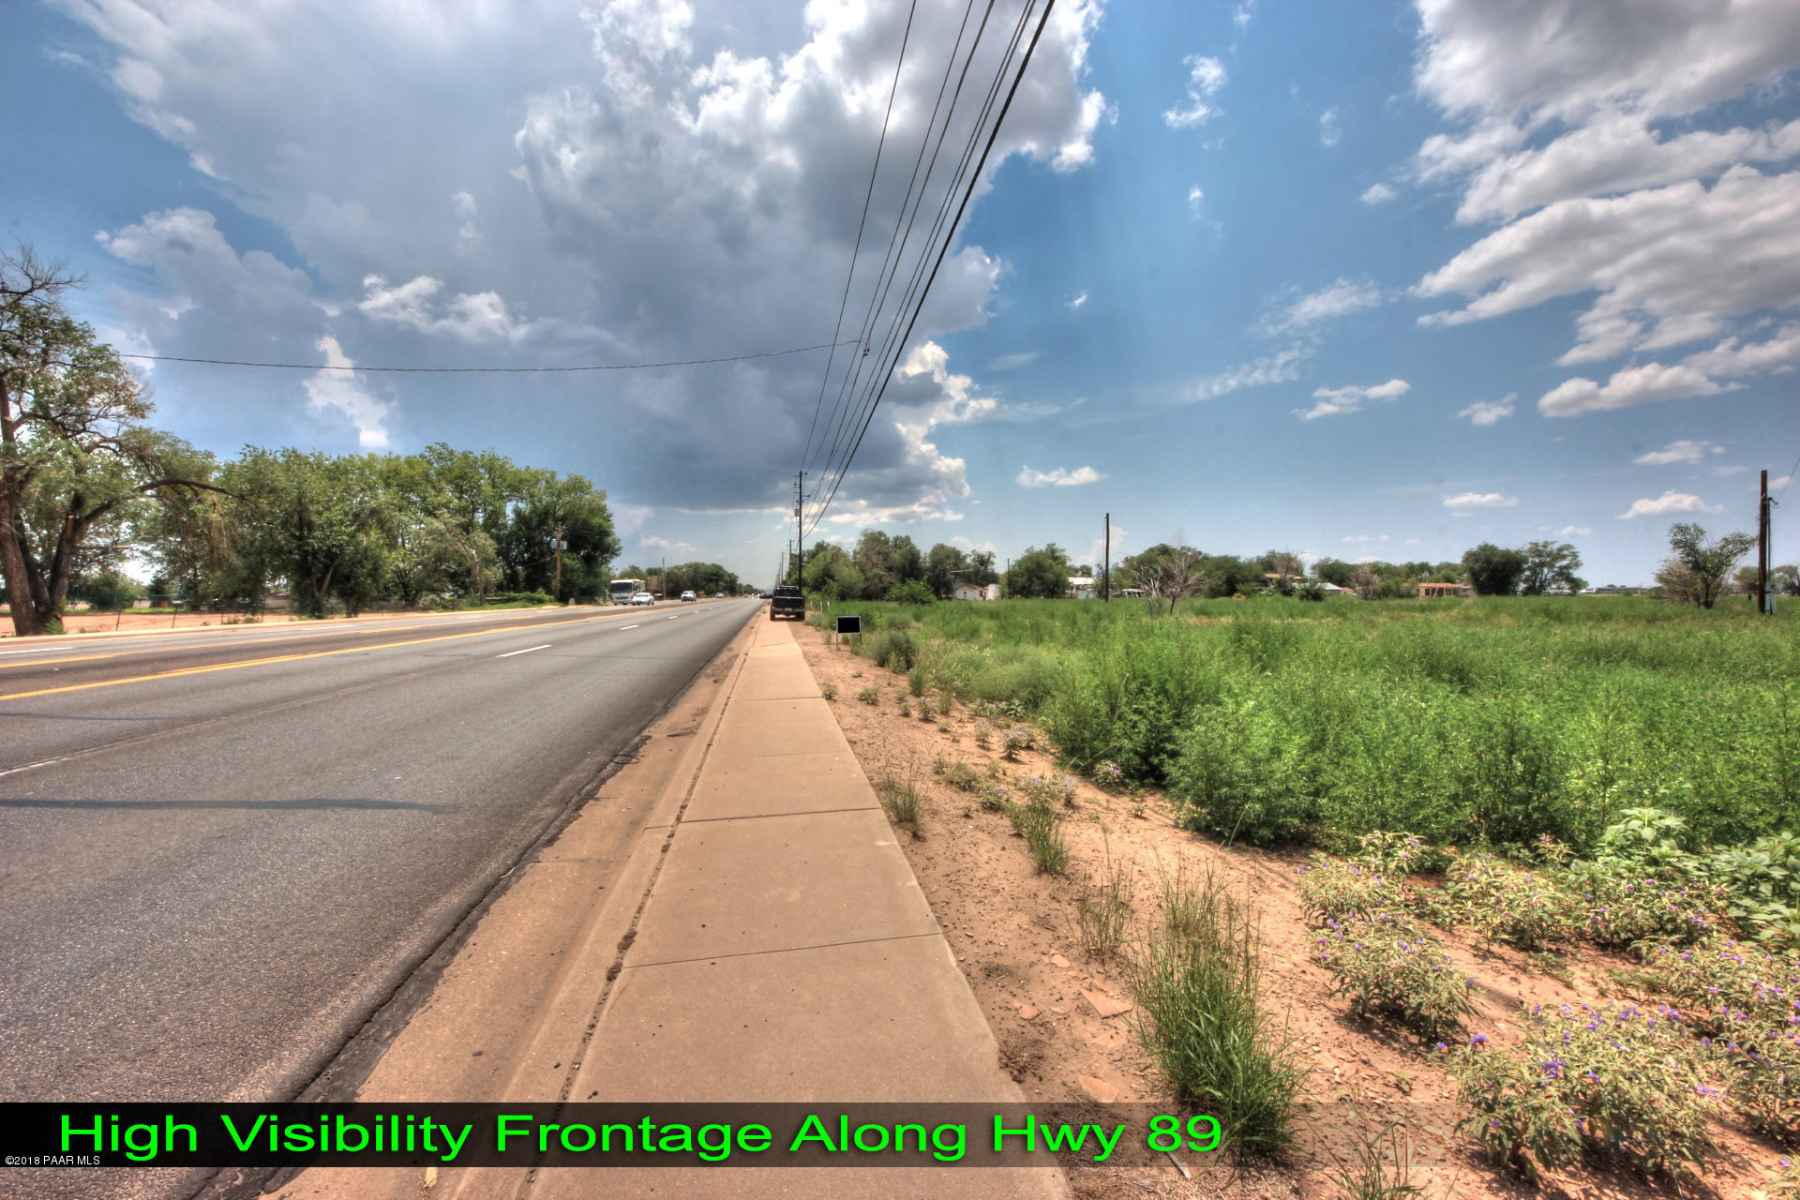 highway_89_frontage_4